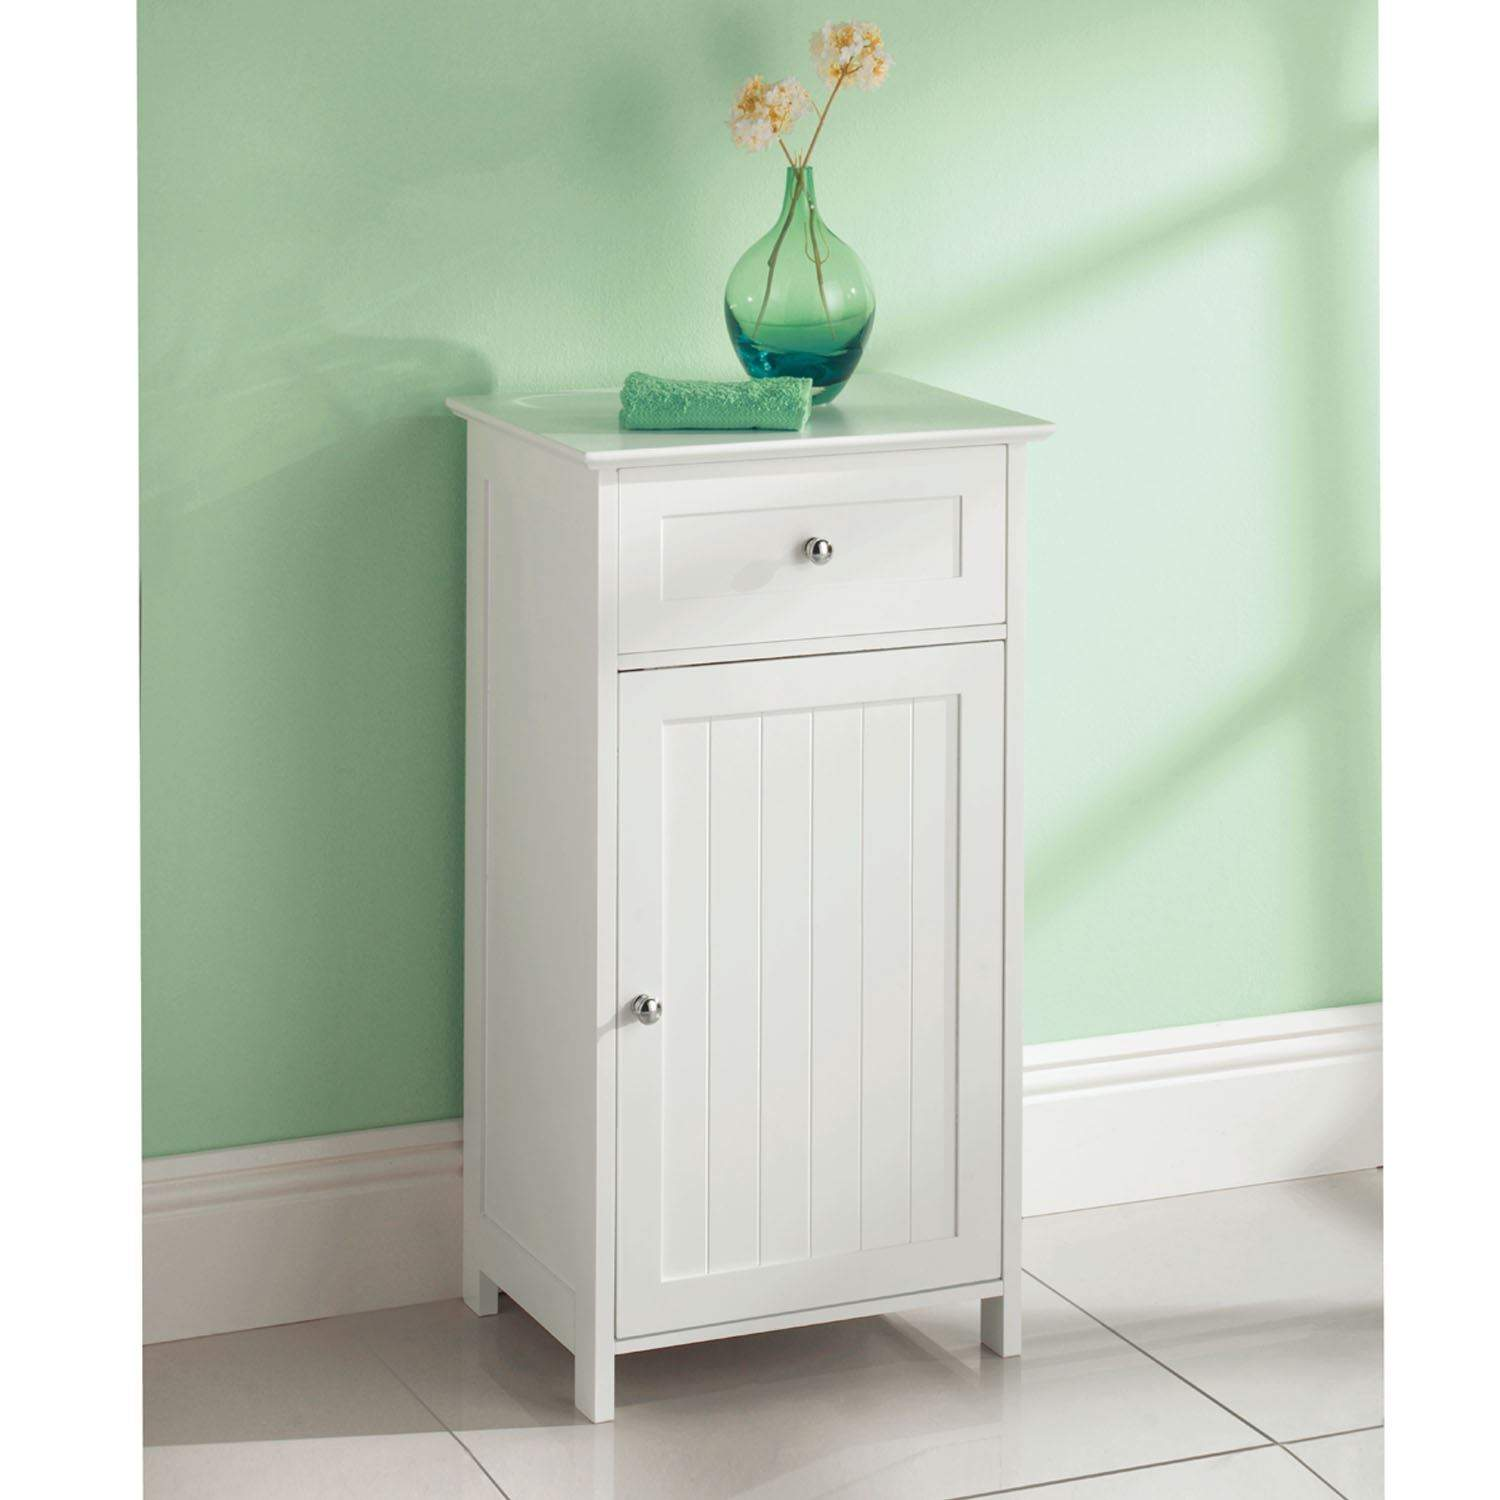 free standing bathroom cabinets with drawers white wood free standing bathroom storage cabinet unit exclusive white EWKMIDH